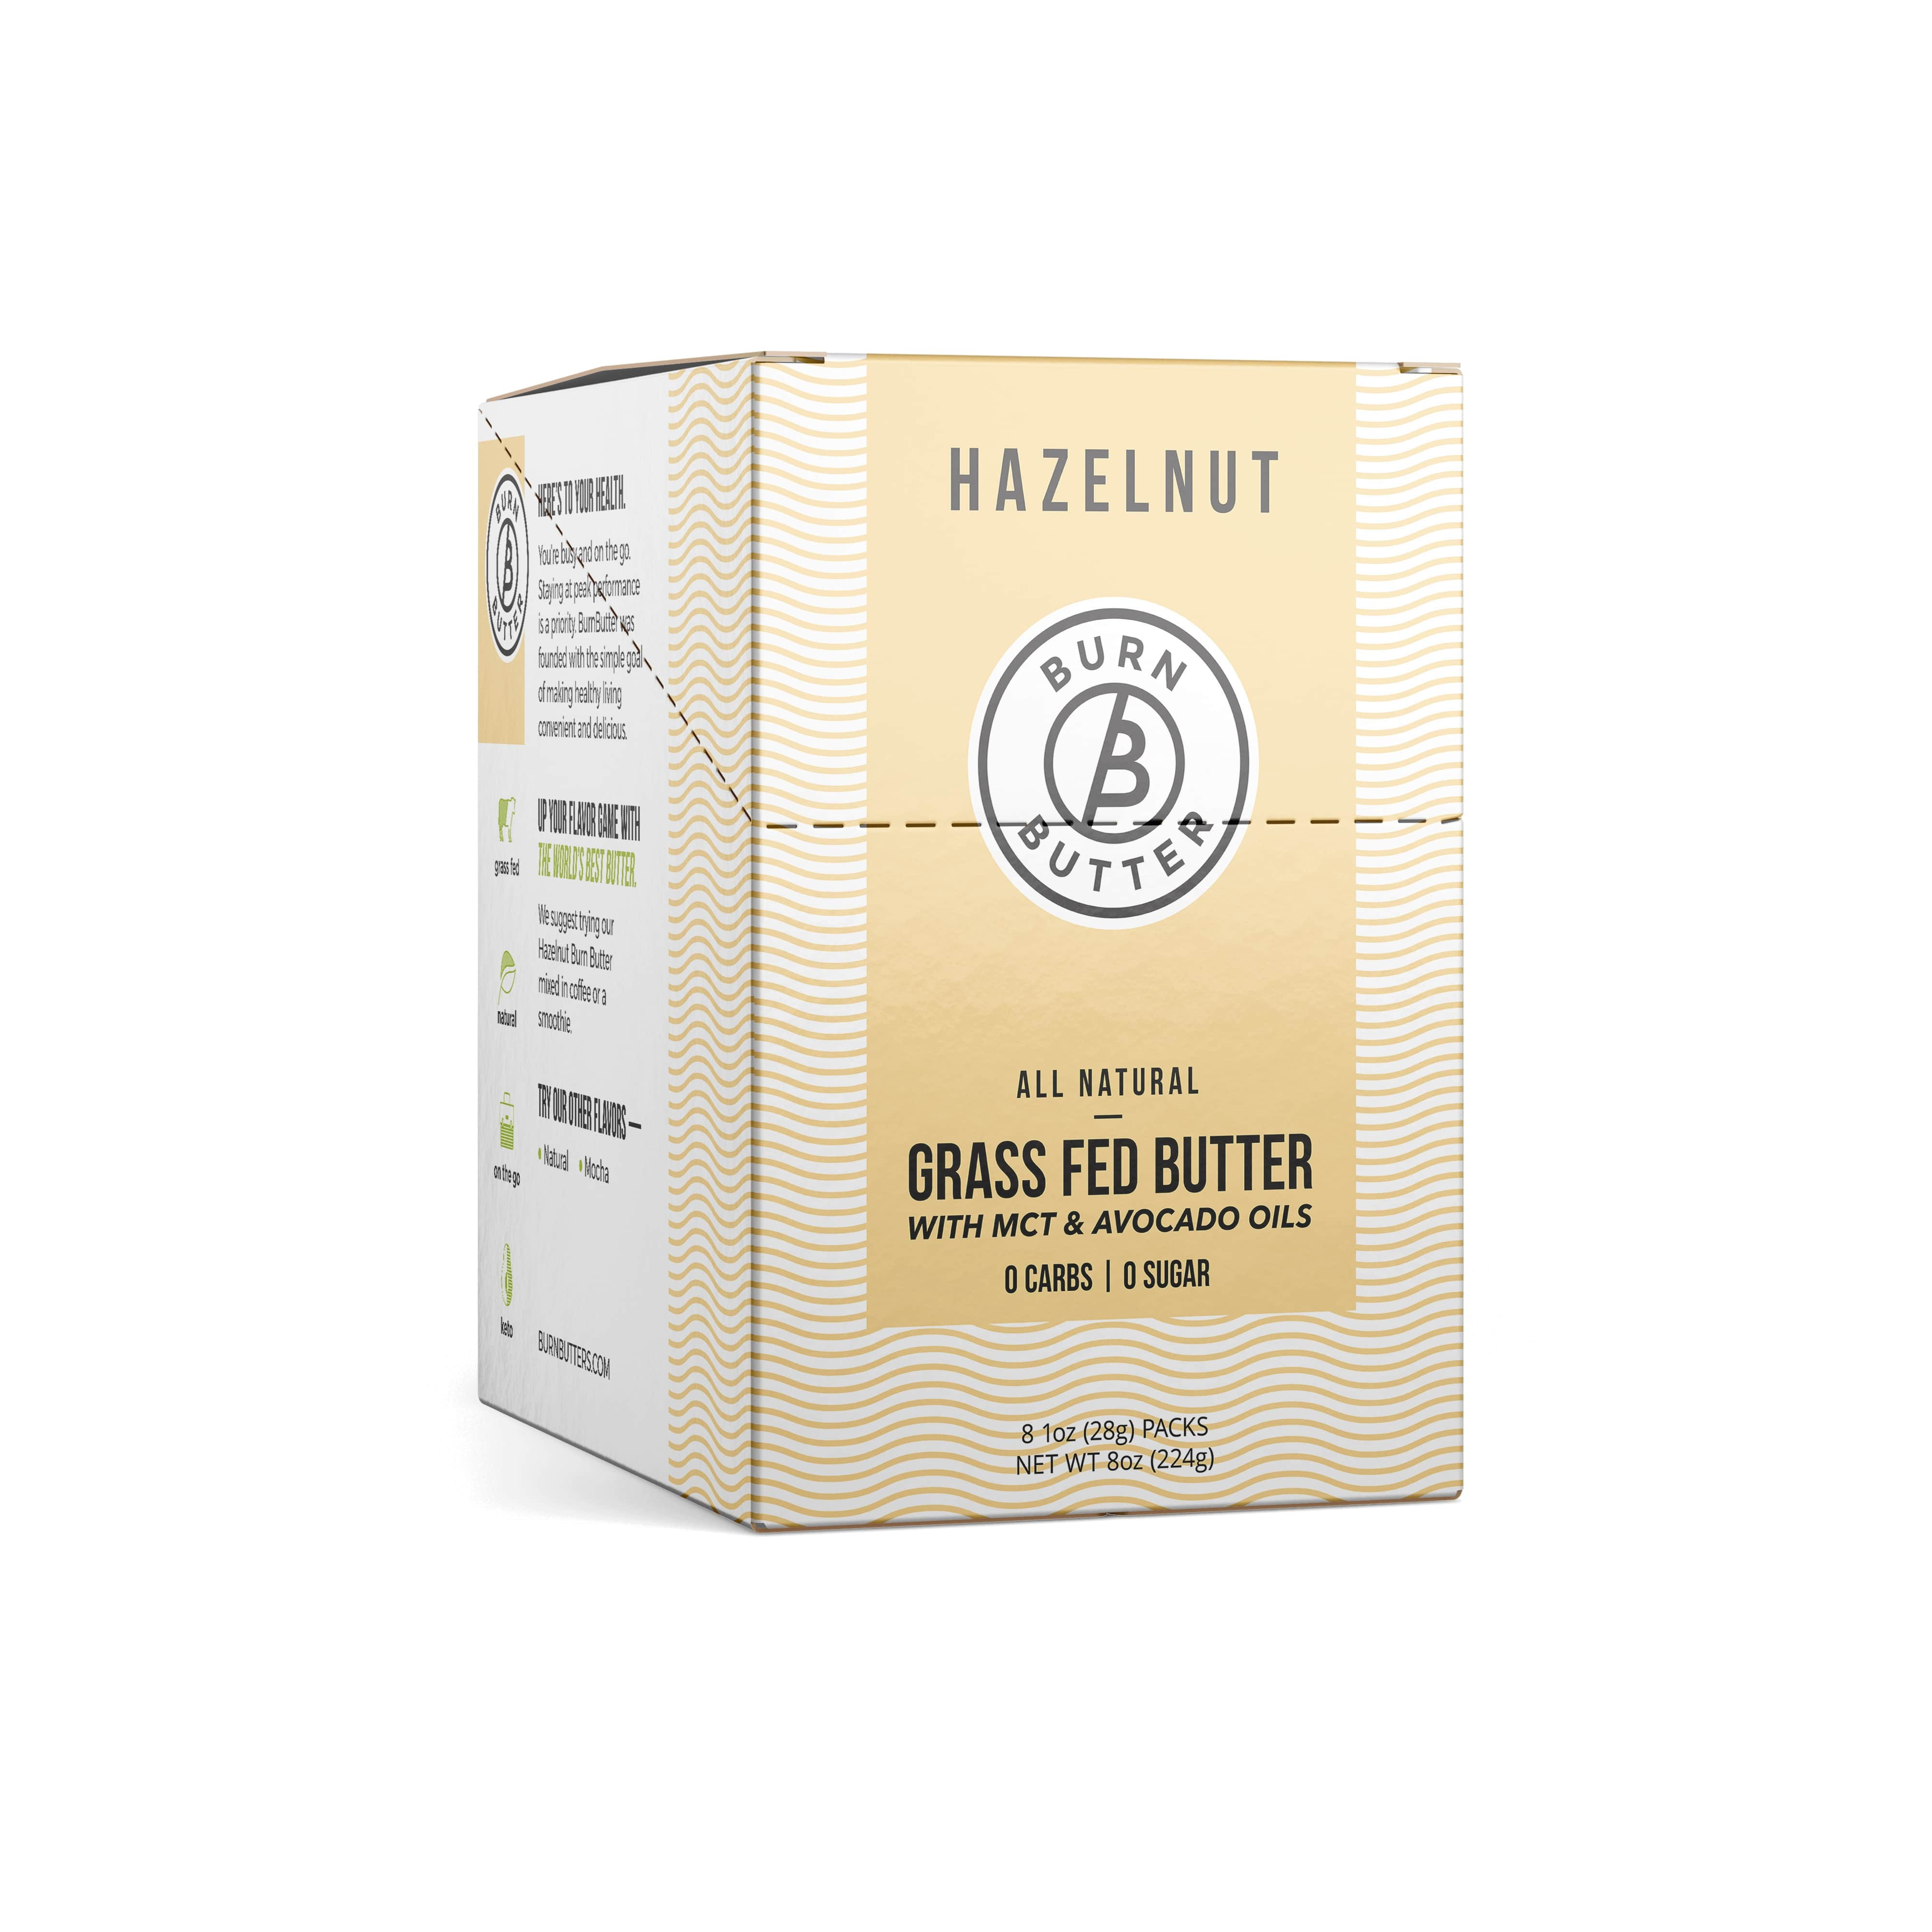 Burn Butter™ - Hazelnut Grass Fed Butter - 1 Box (8 Pouches)